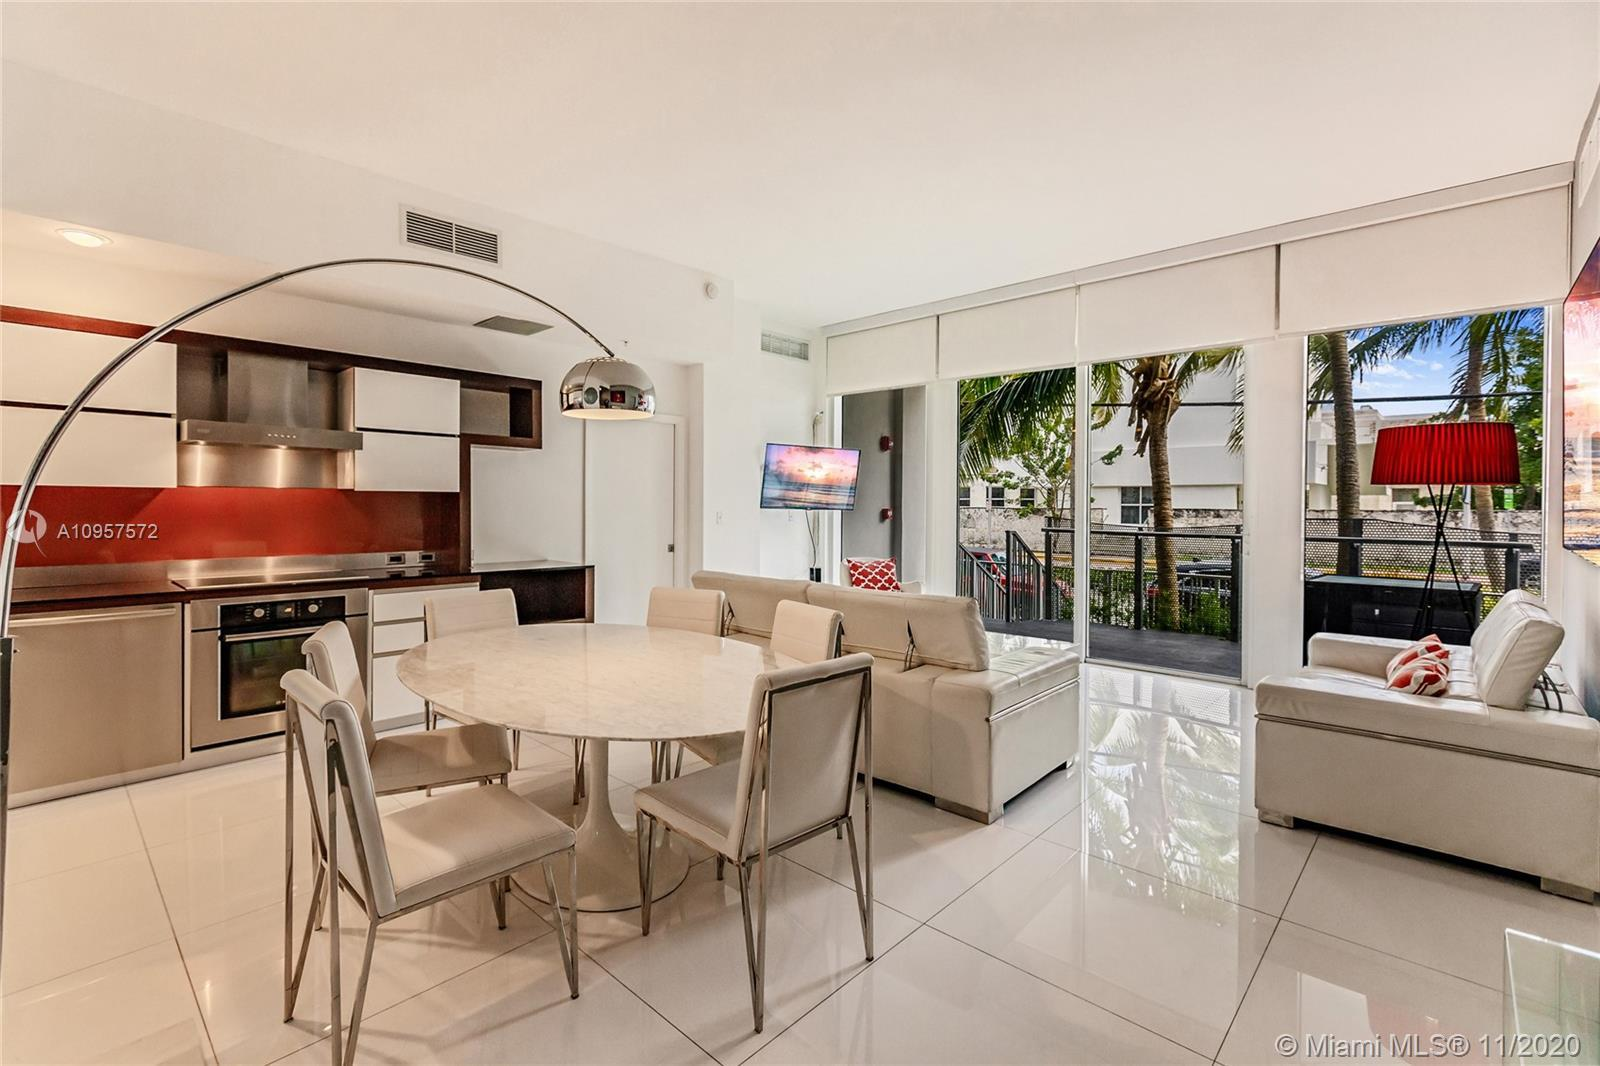 Residence 101 features a spacious loft style lanai with 12 foot ceilings, large rooms and private la